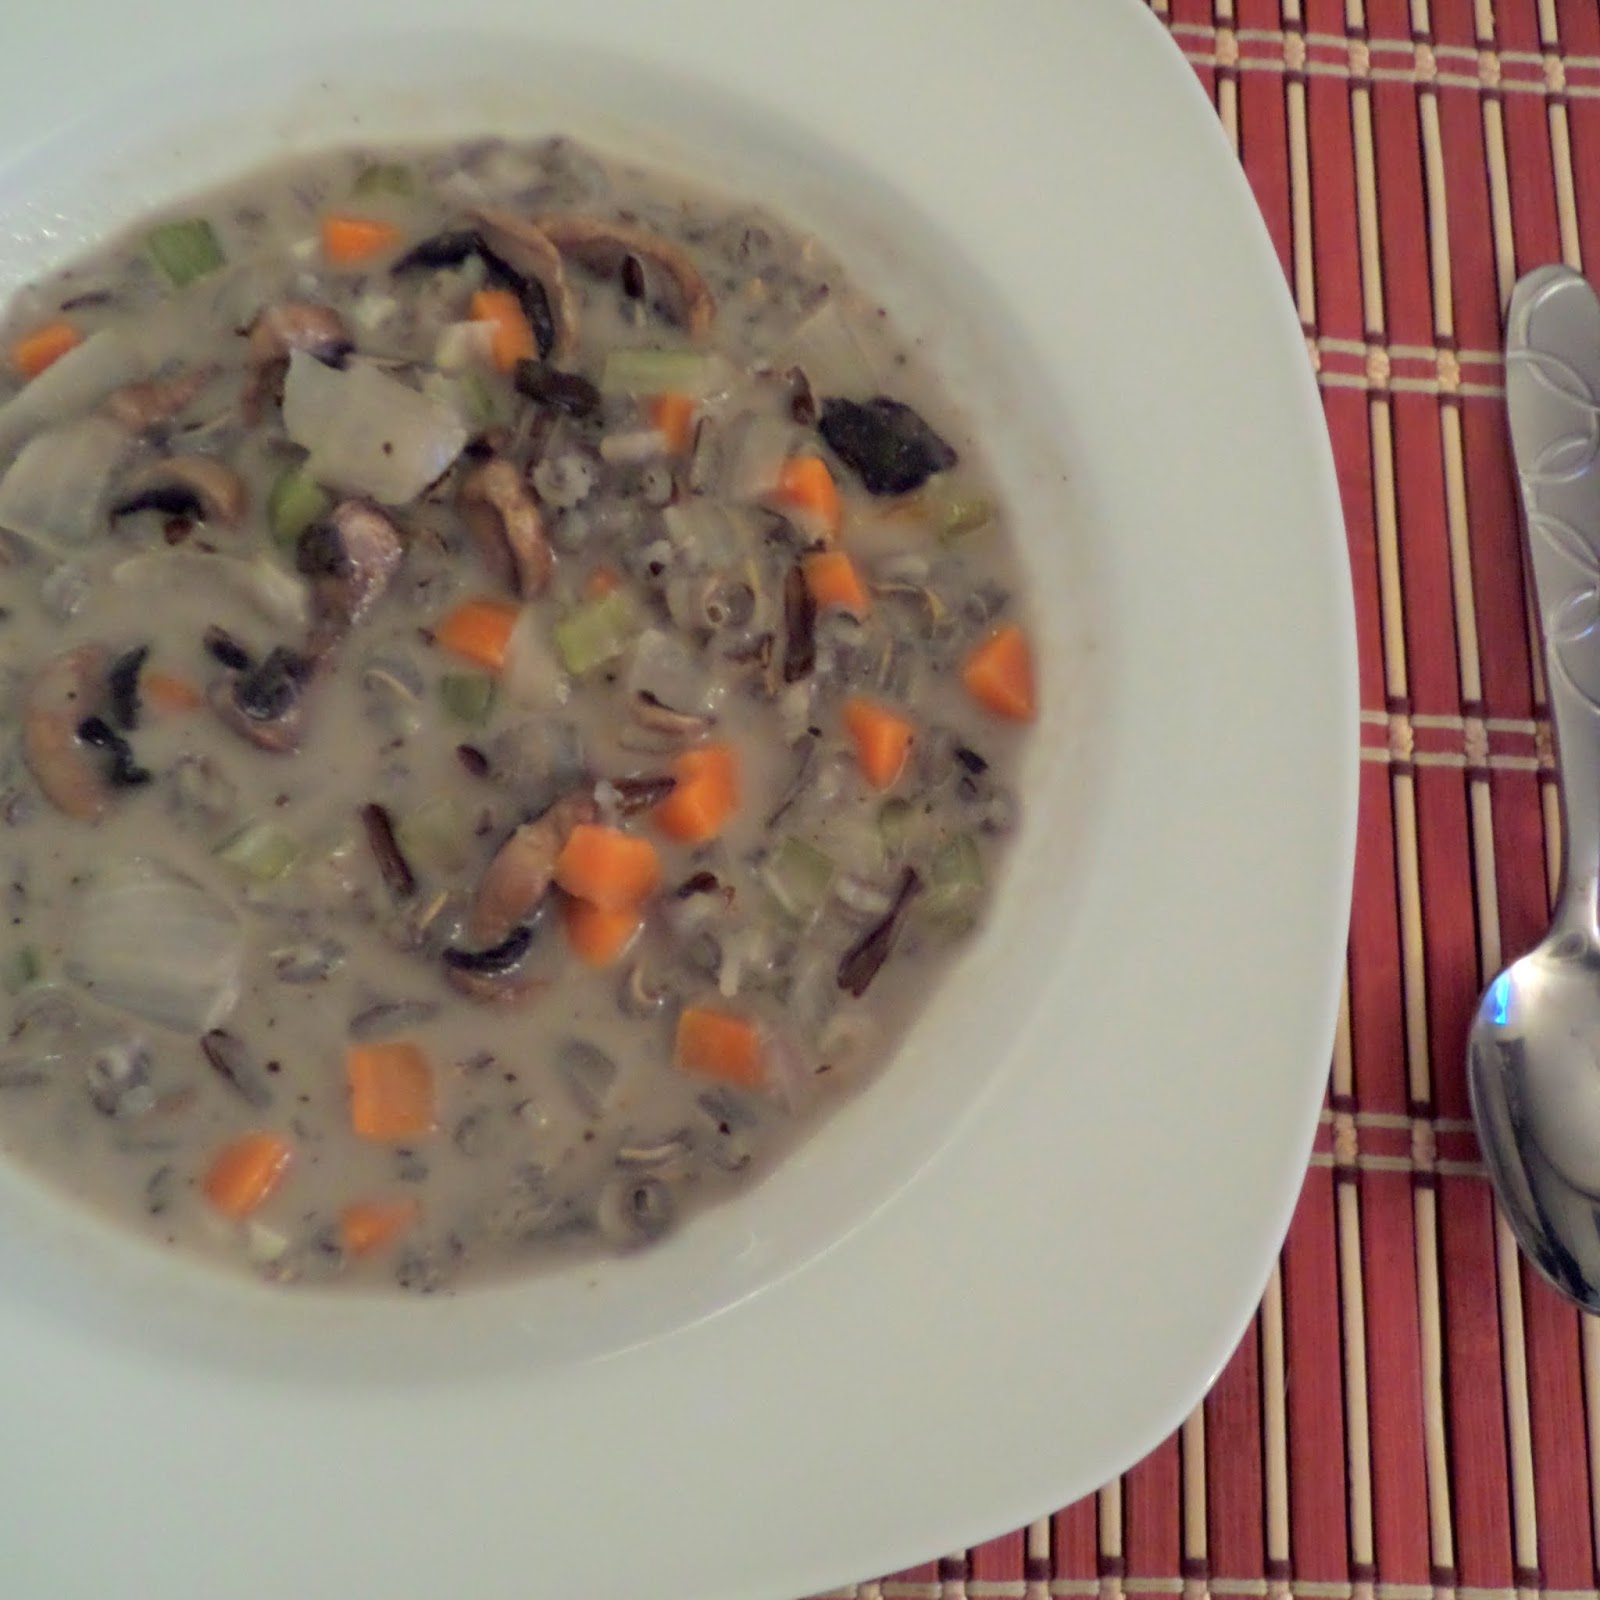 Mushroom and Wild Rice Soup:  A creamy, meatless, soup with mushrooms and wild rice.  It's warm comfort food for a cold night.